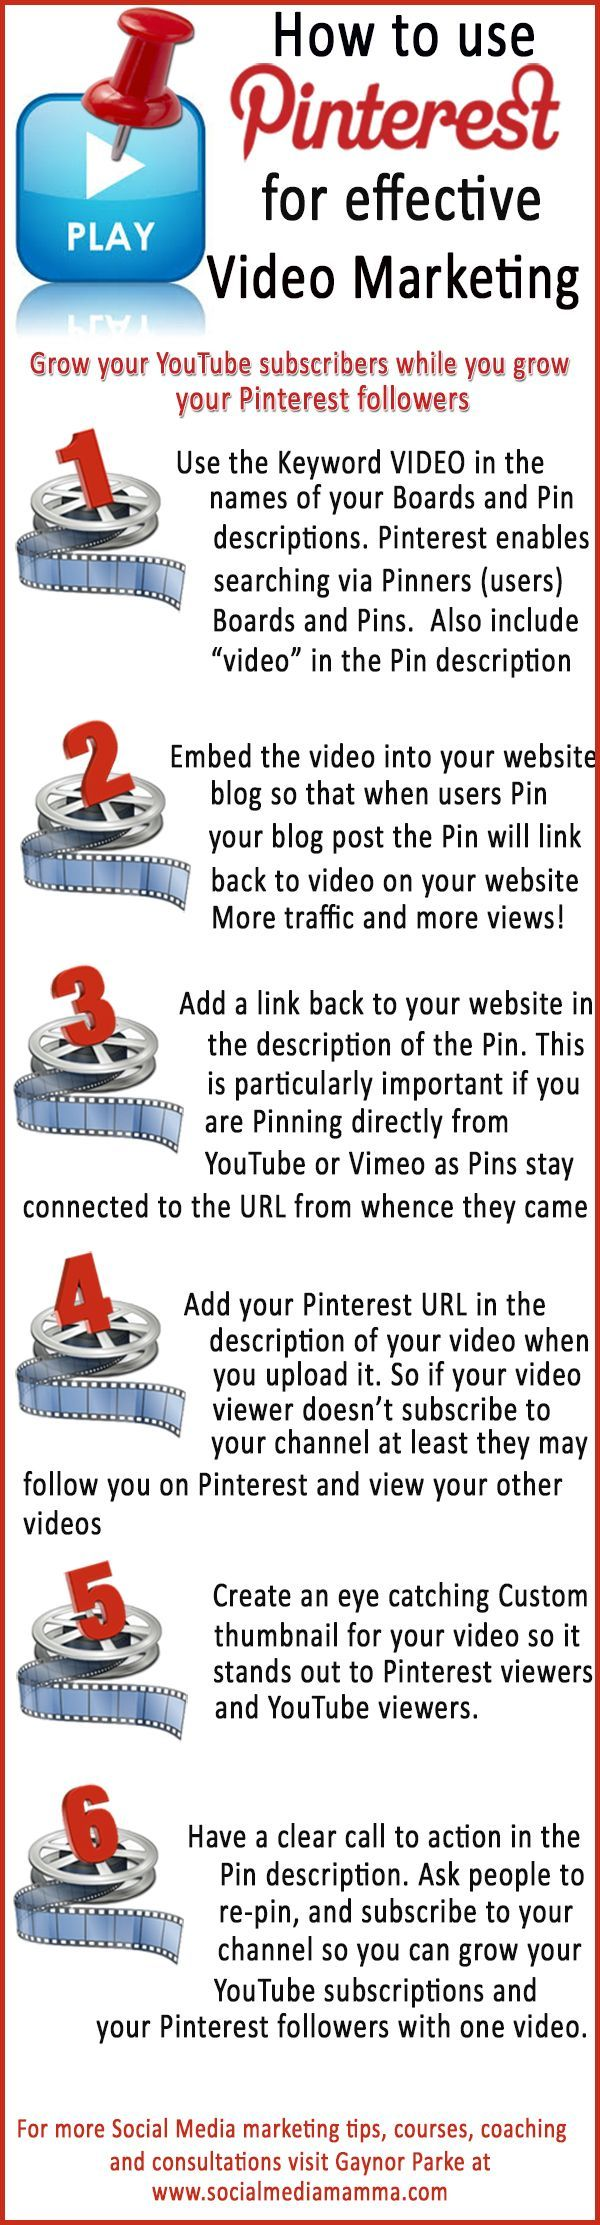 の♪♫ How to use #Pinterest to promote your videos and increase your YouTube subscribers #Videomarketing content marketing #infographic www.socialmediama...